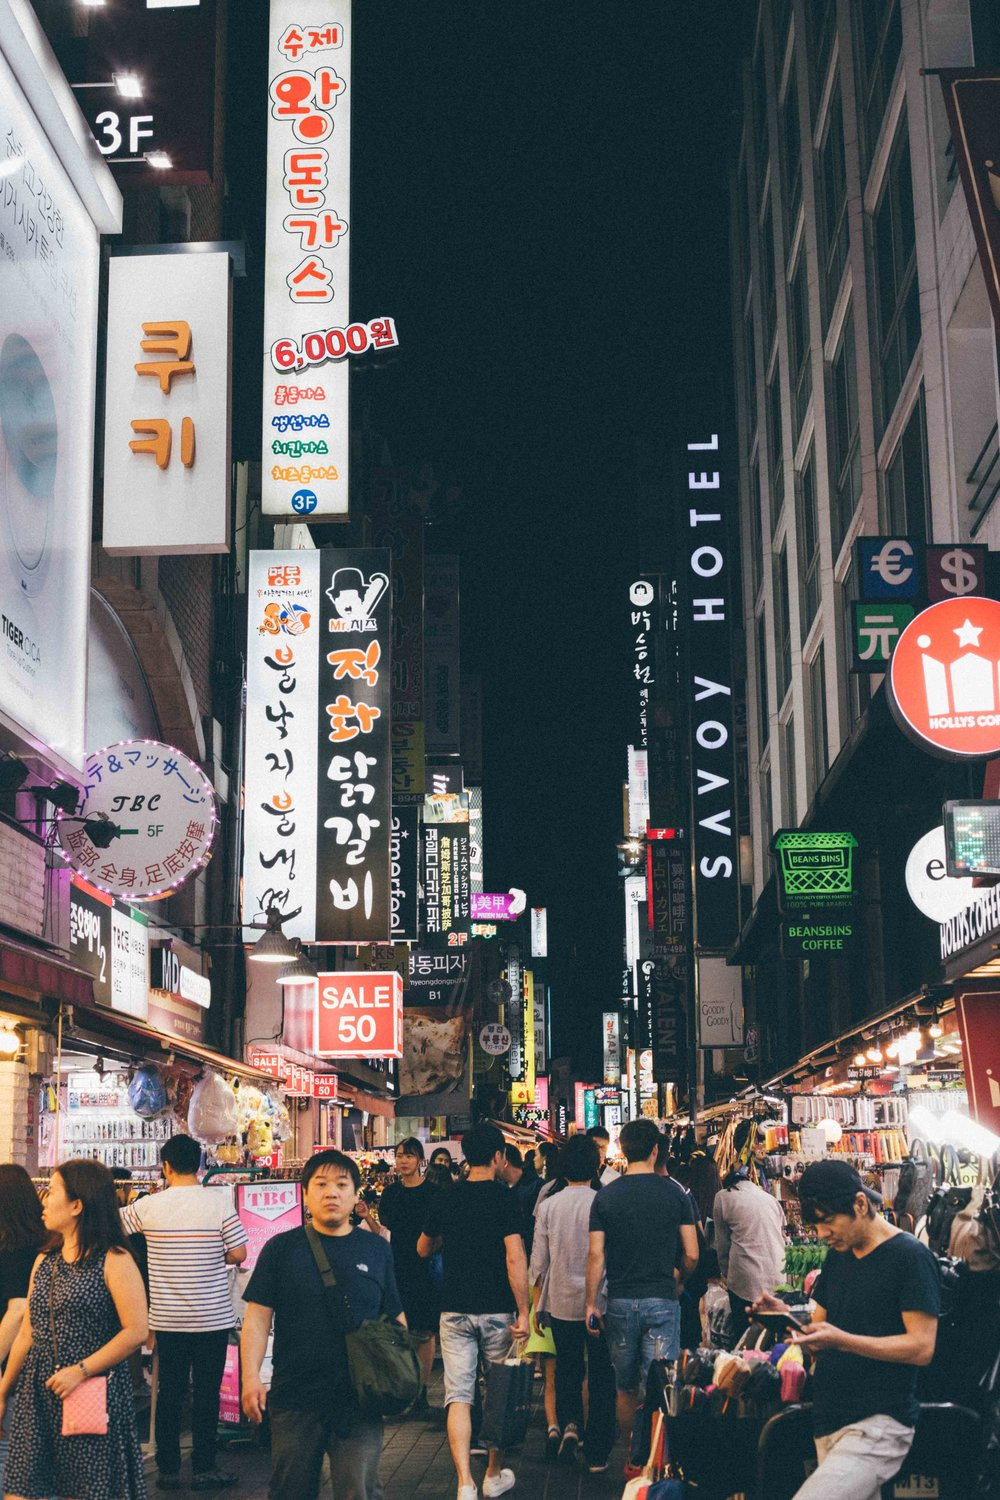 The Myeongdong neighbourhood at night, buzzing.